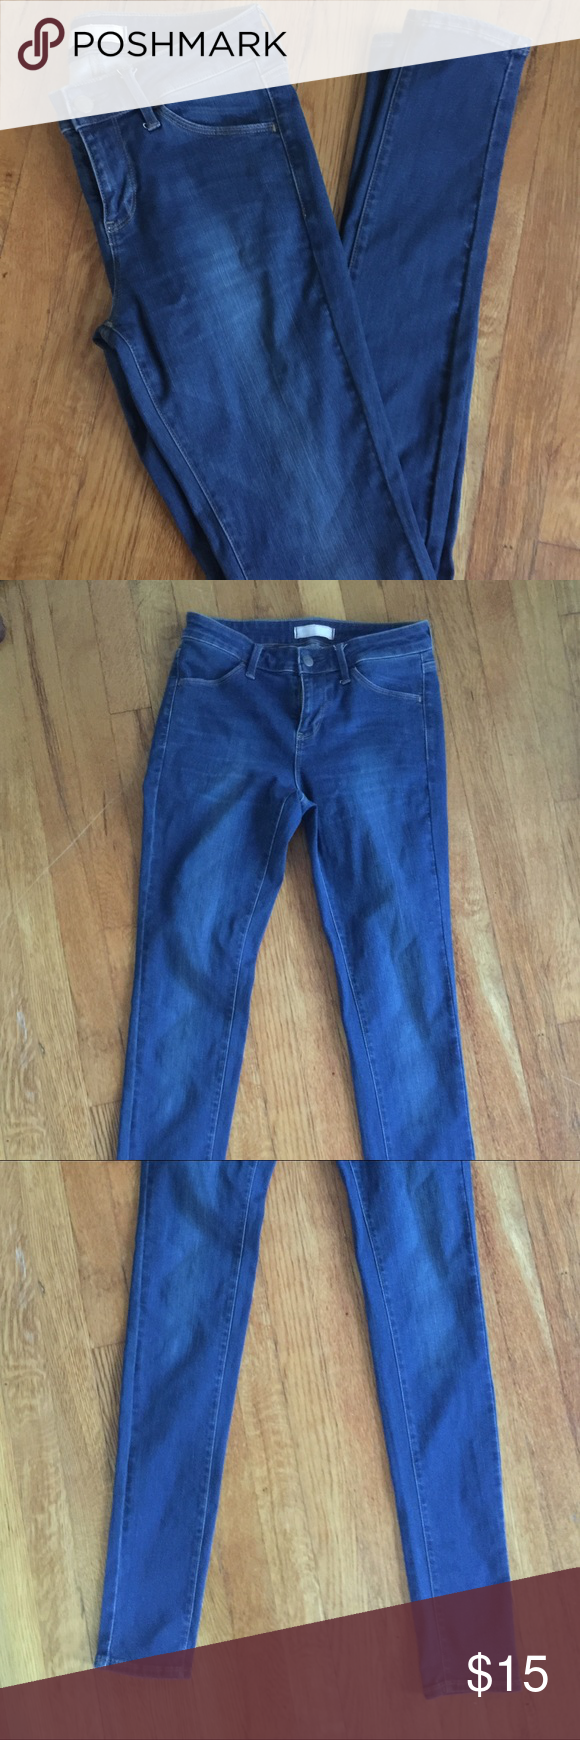 NWOT uniqlo skinny jeans Perfect condition dark wash skinny jeans from Uniqlo. Great for your fall wardrobe💗 Uniqlo Jeans Skinny